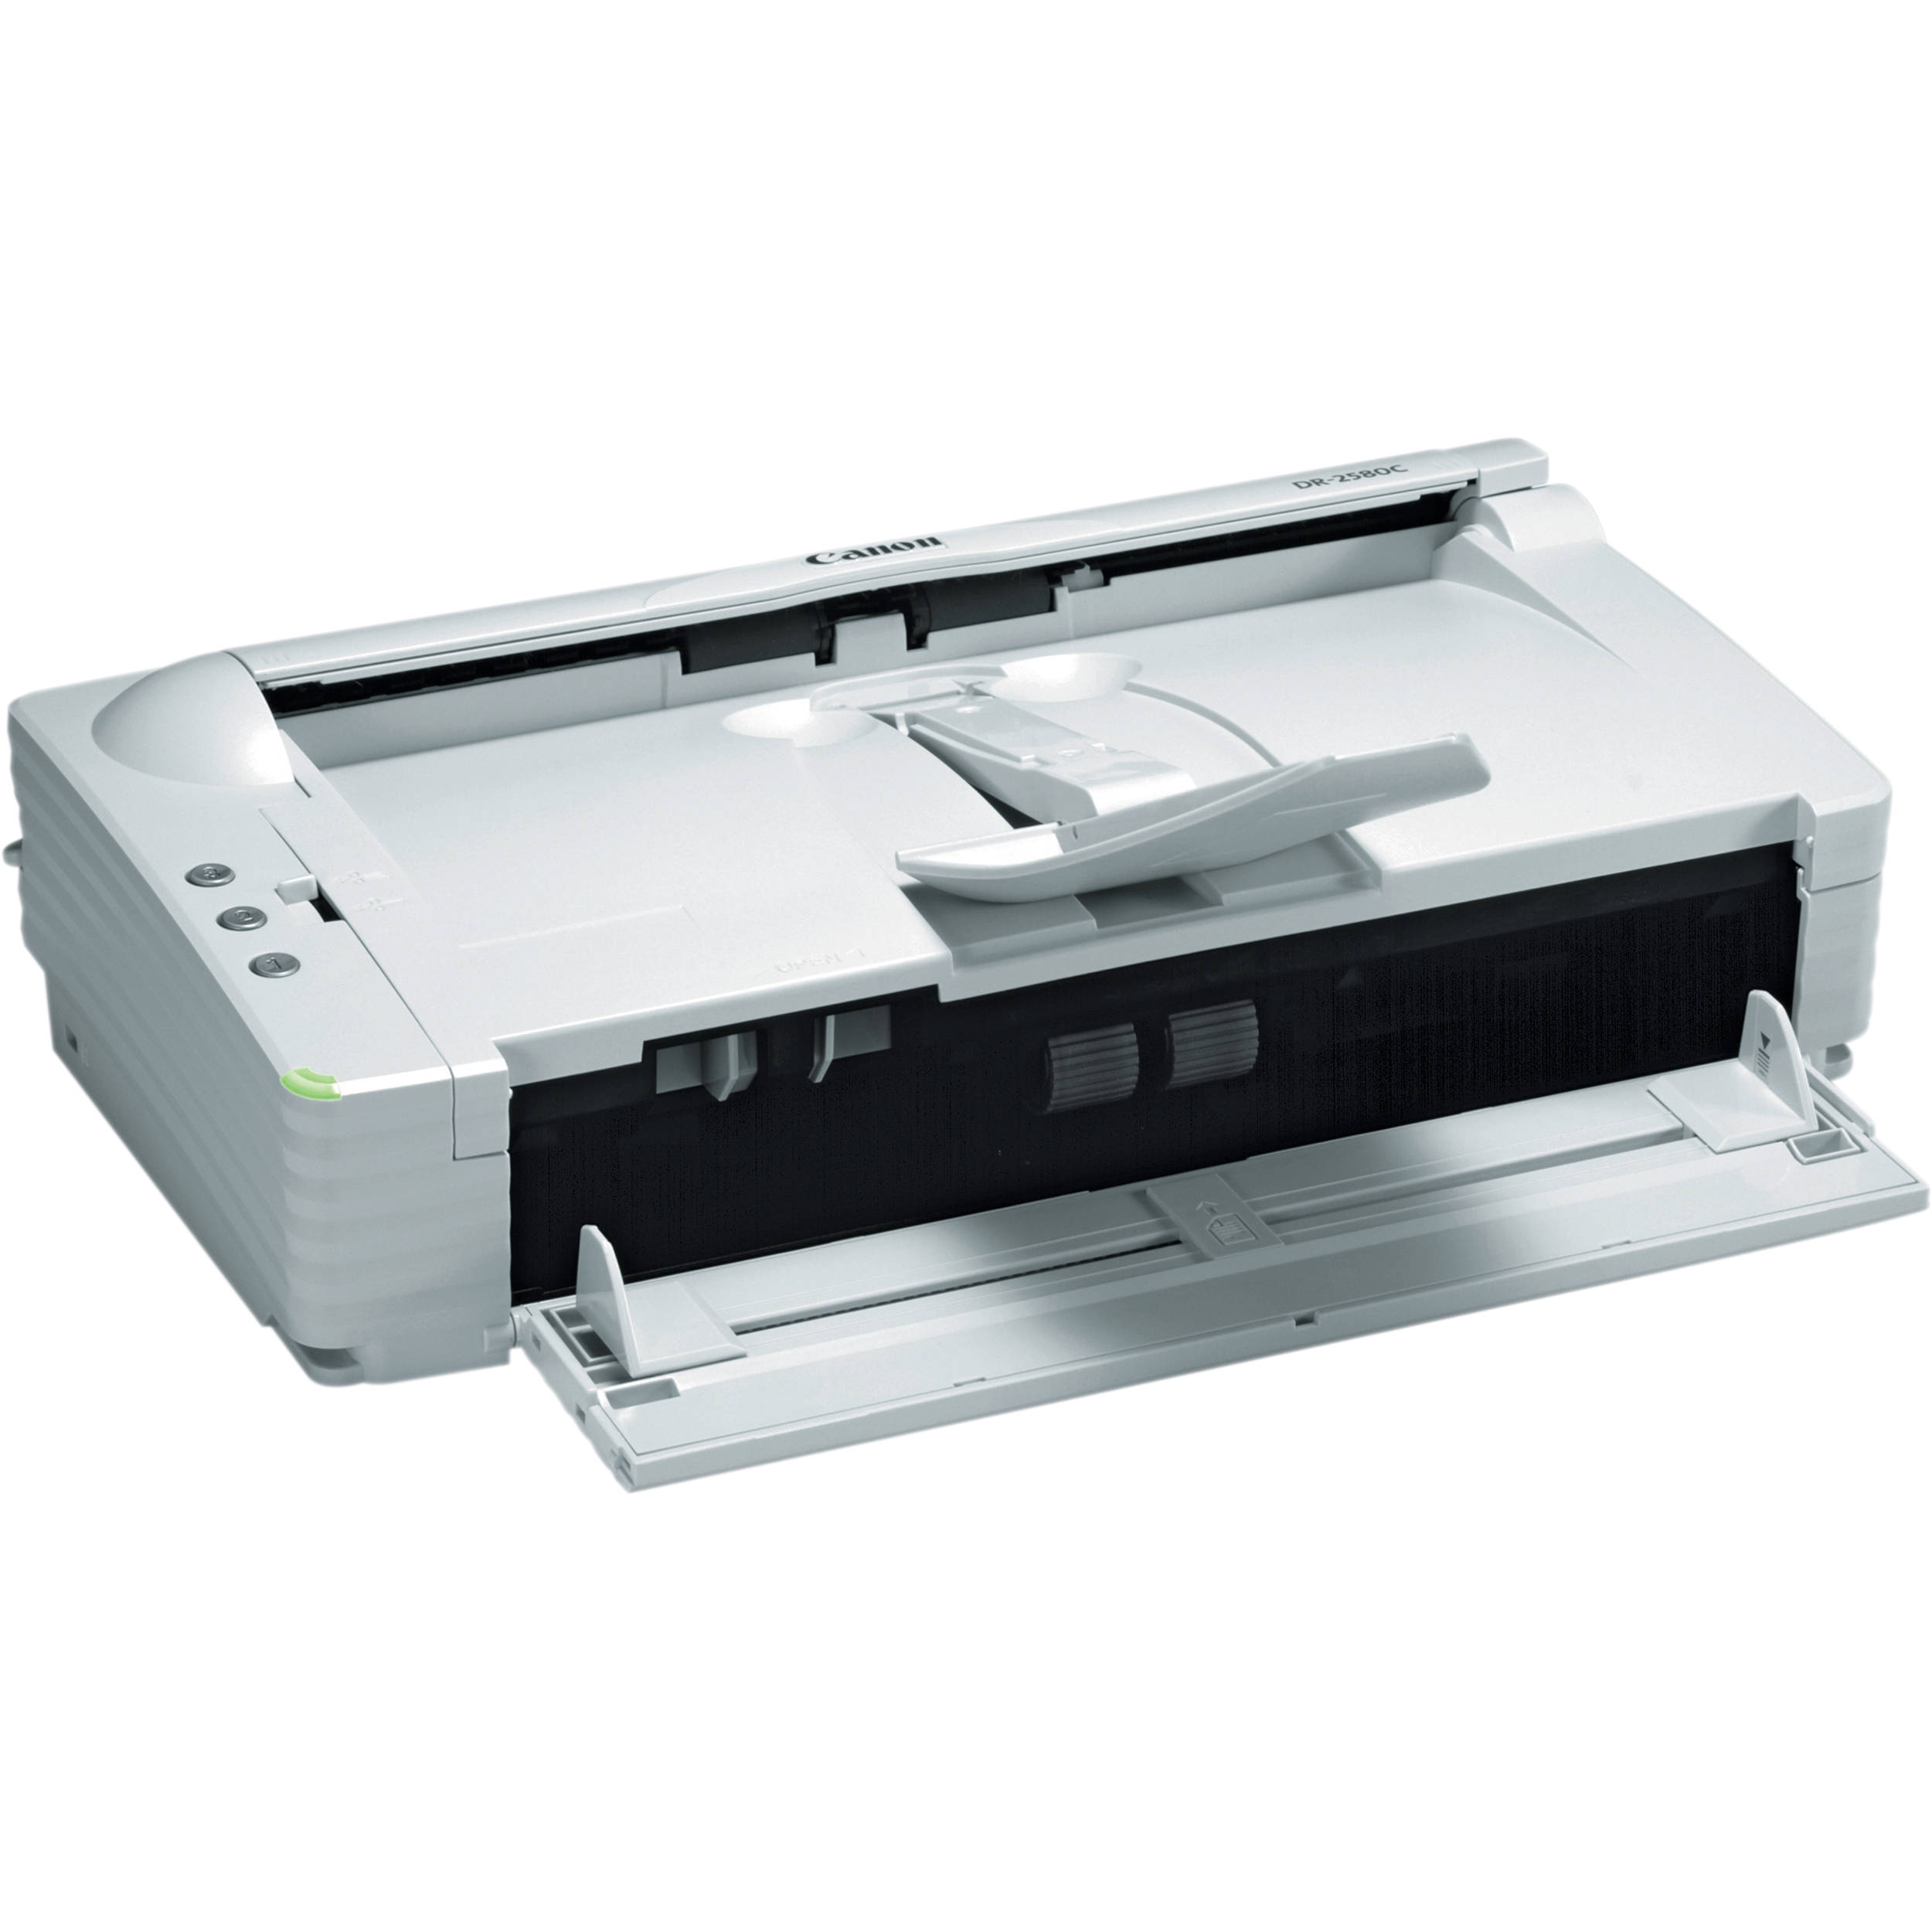 scanners document scanners imageformula dr c